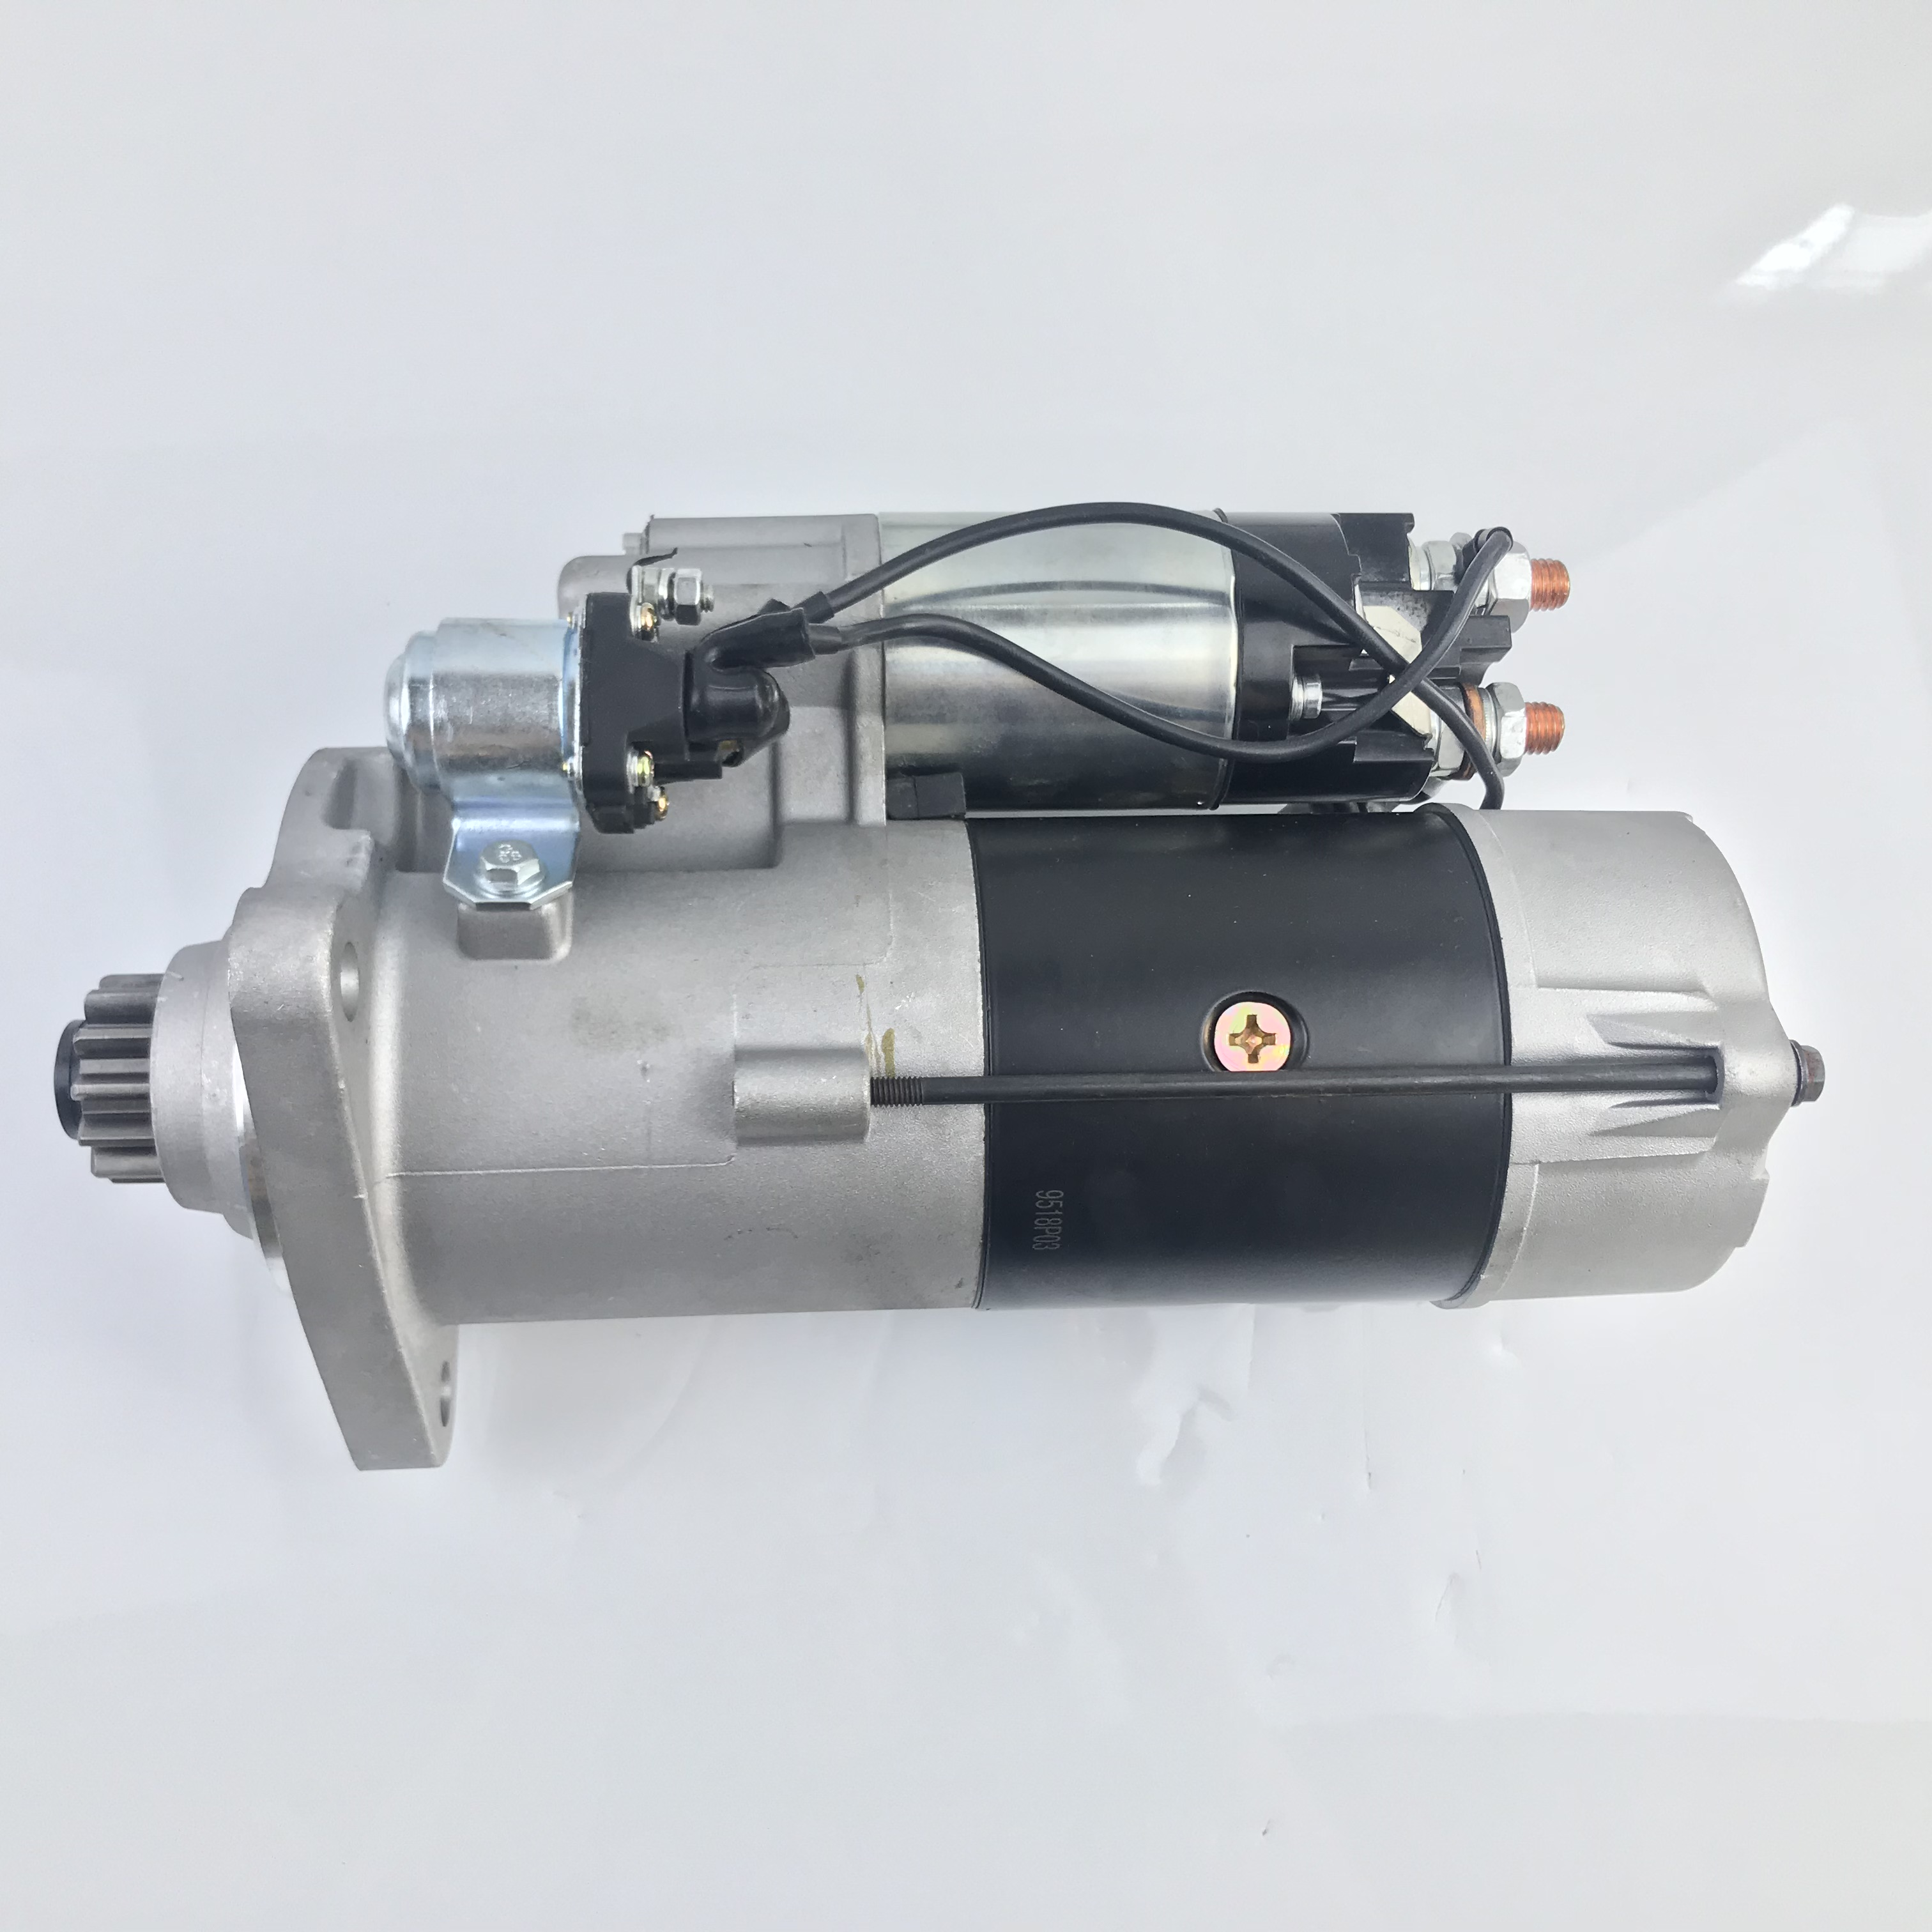 Starter electric car motor M9T80472 M9T80473 M9T83673 for Mitsubishi MERCEDES Actros Travego